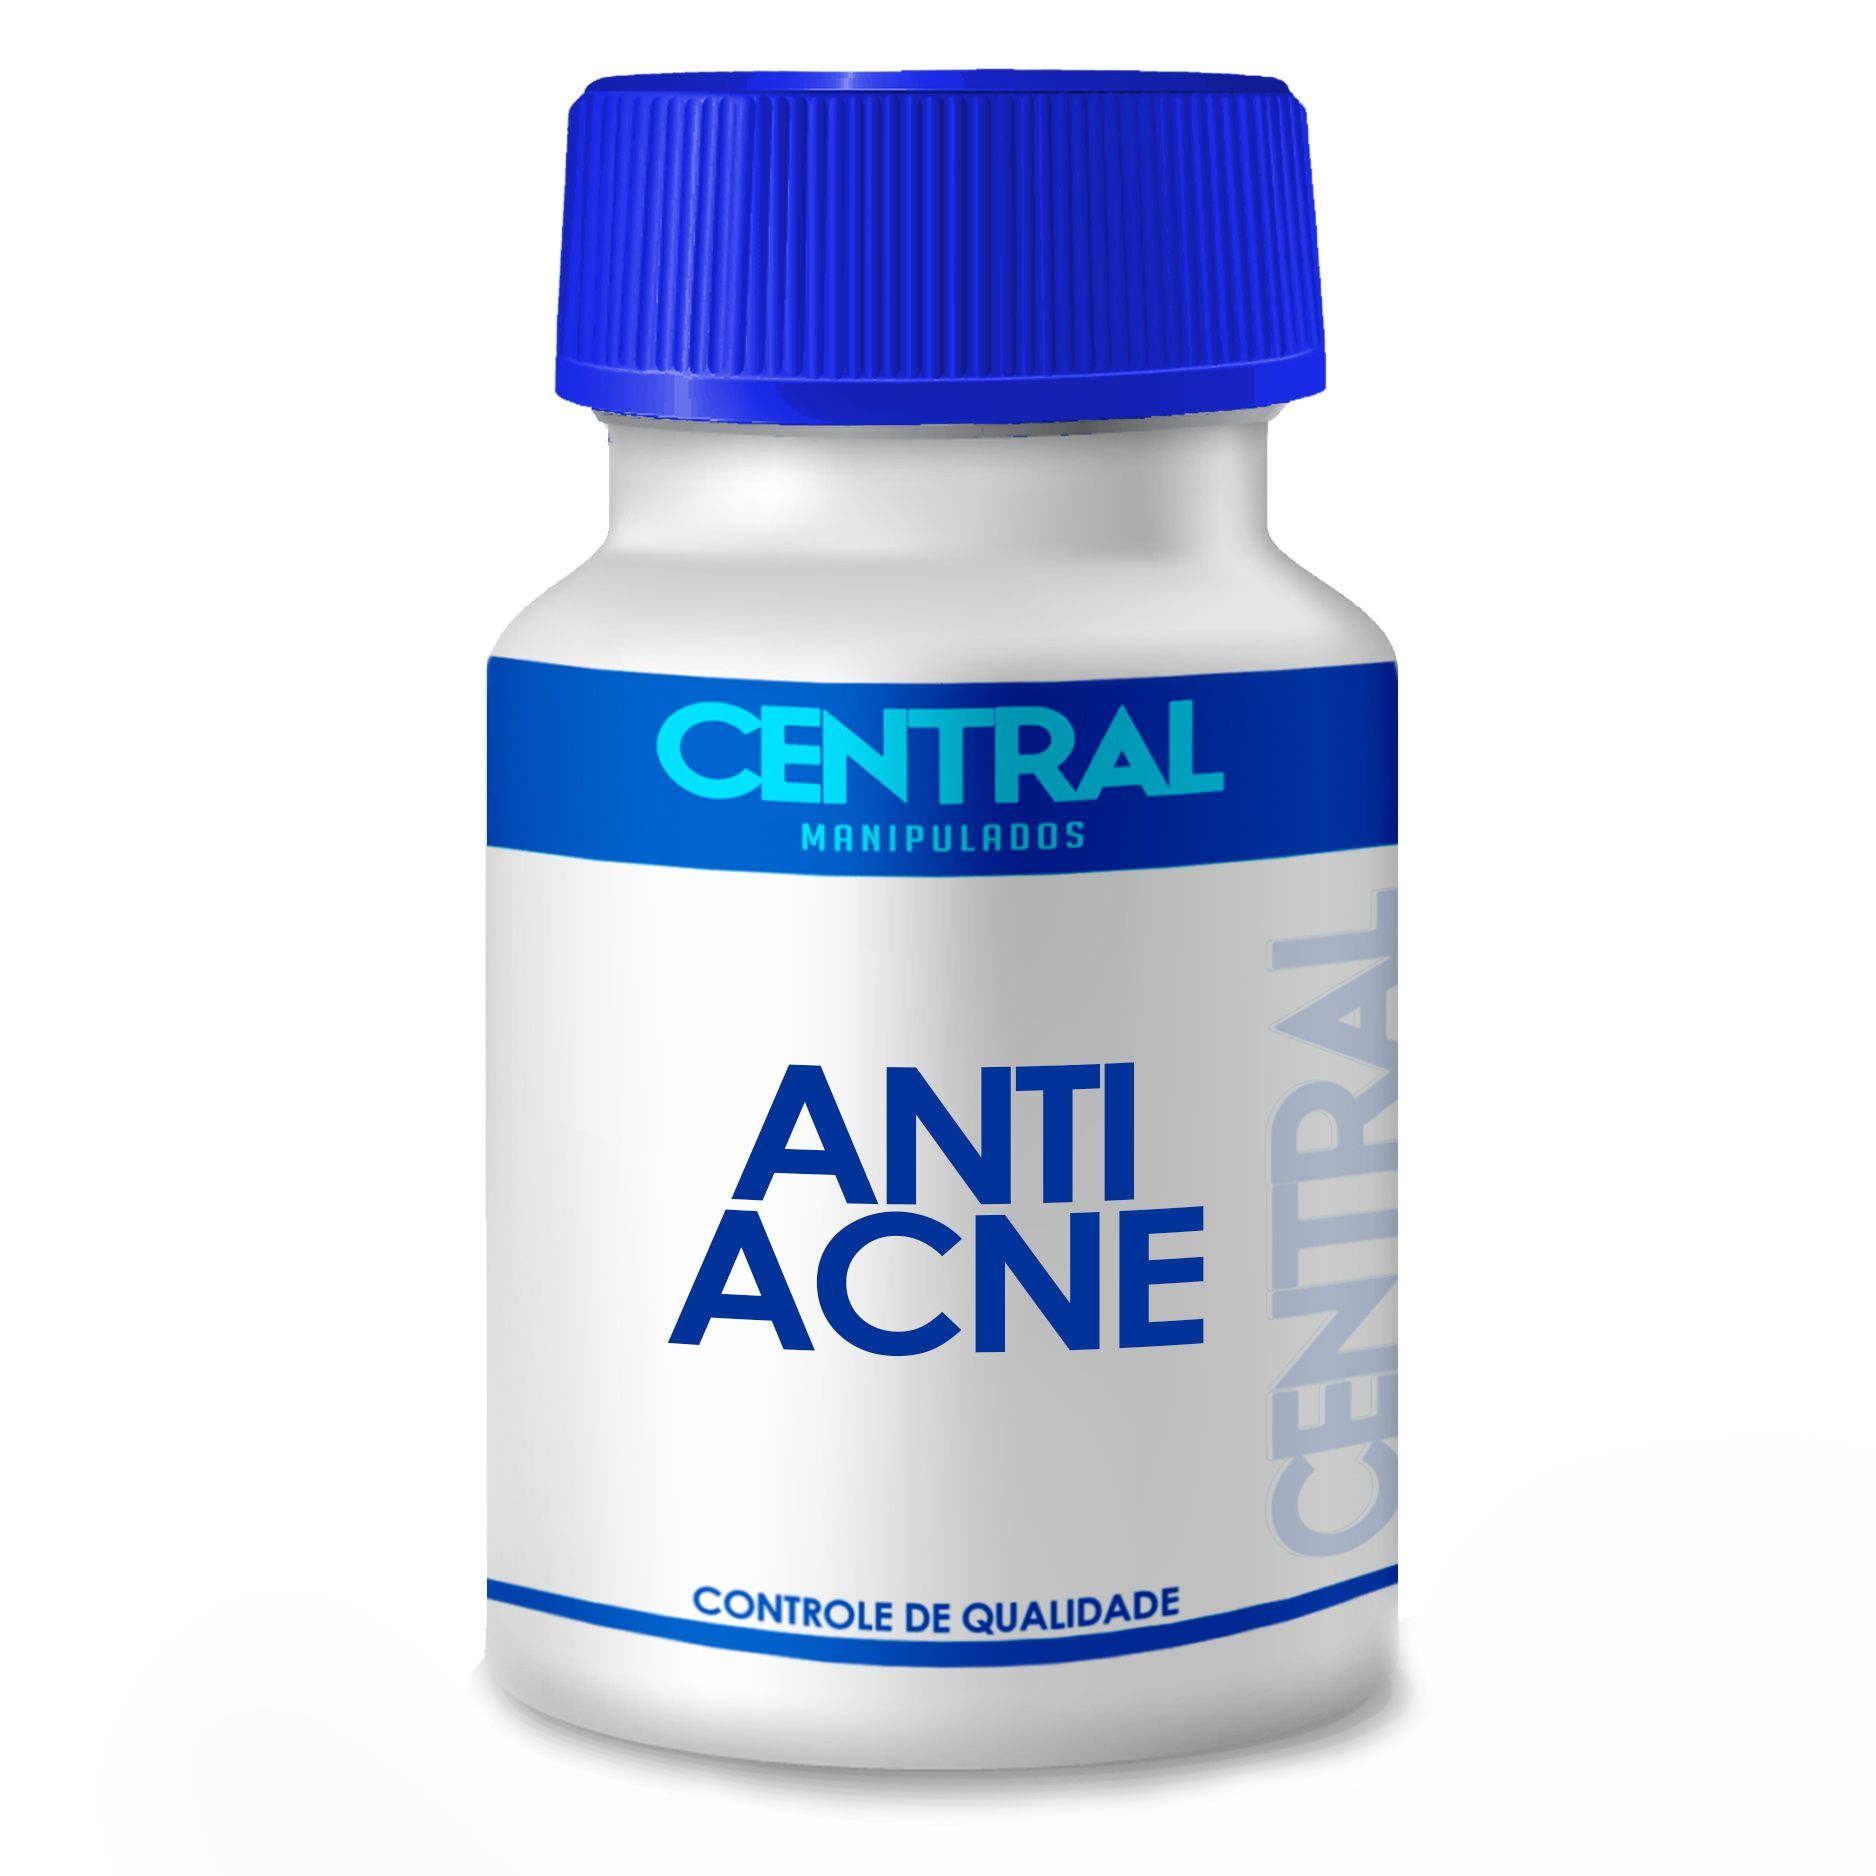 Anti Acne Central 90 cápsulas